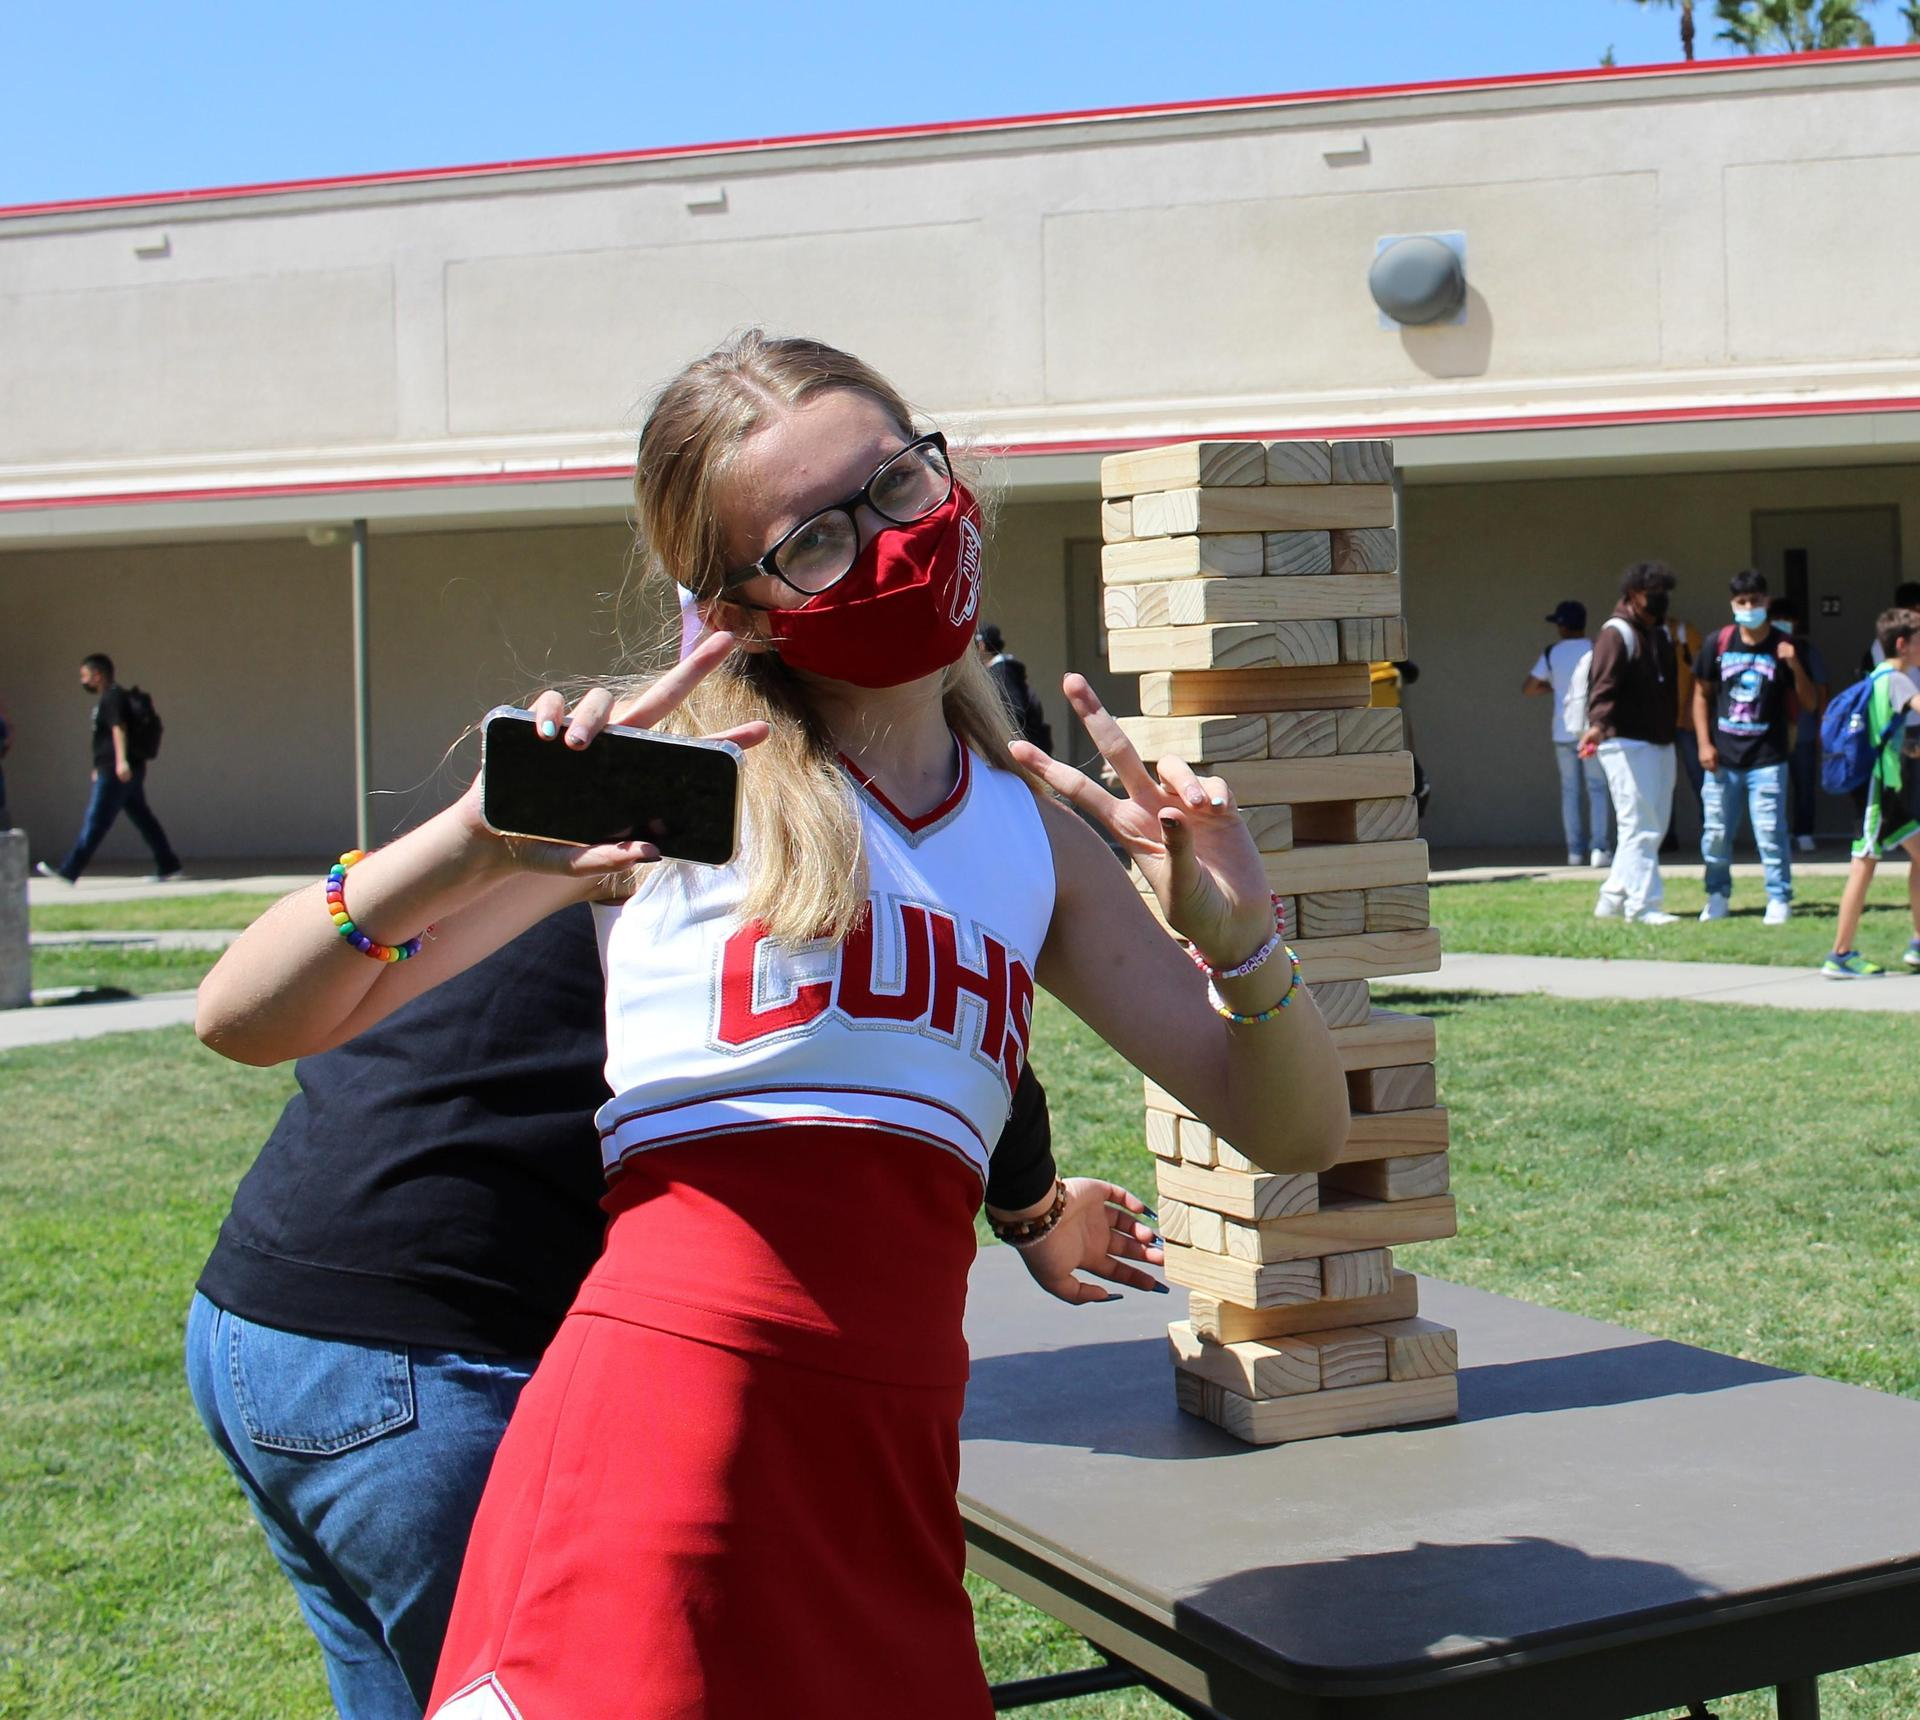 Students enjoying the lunchtime activity